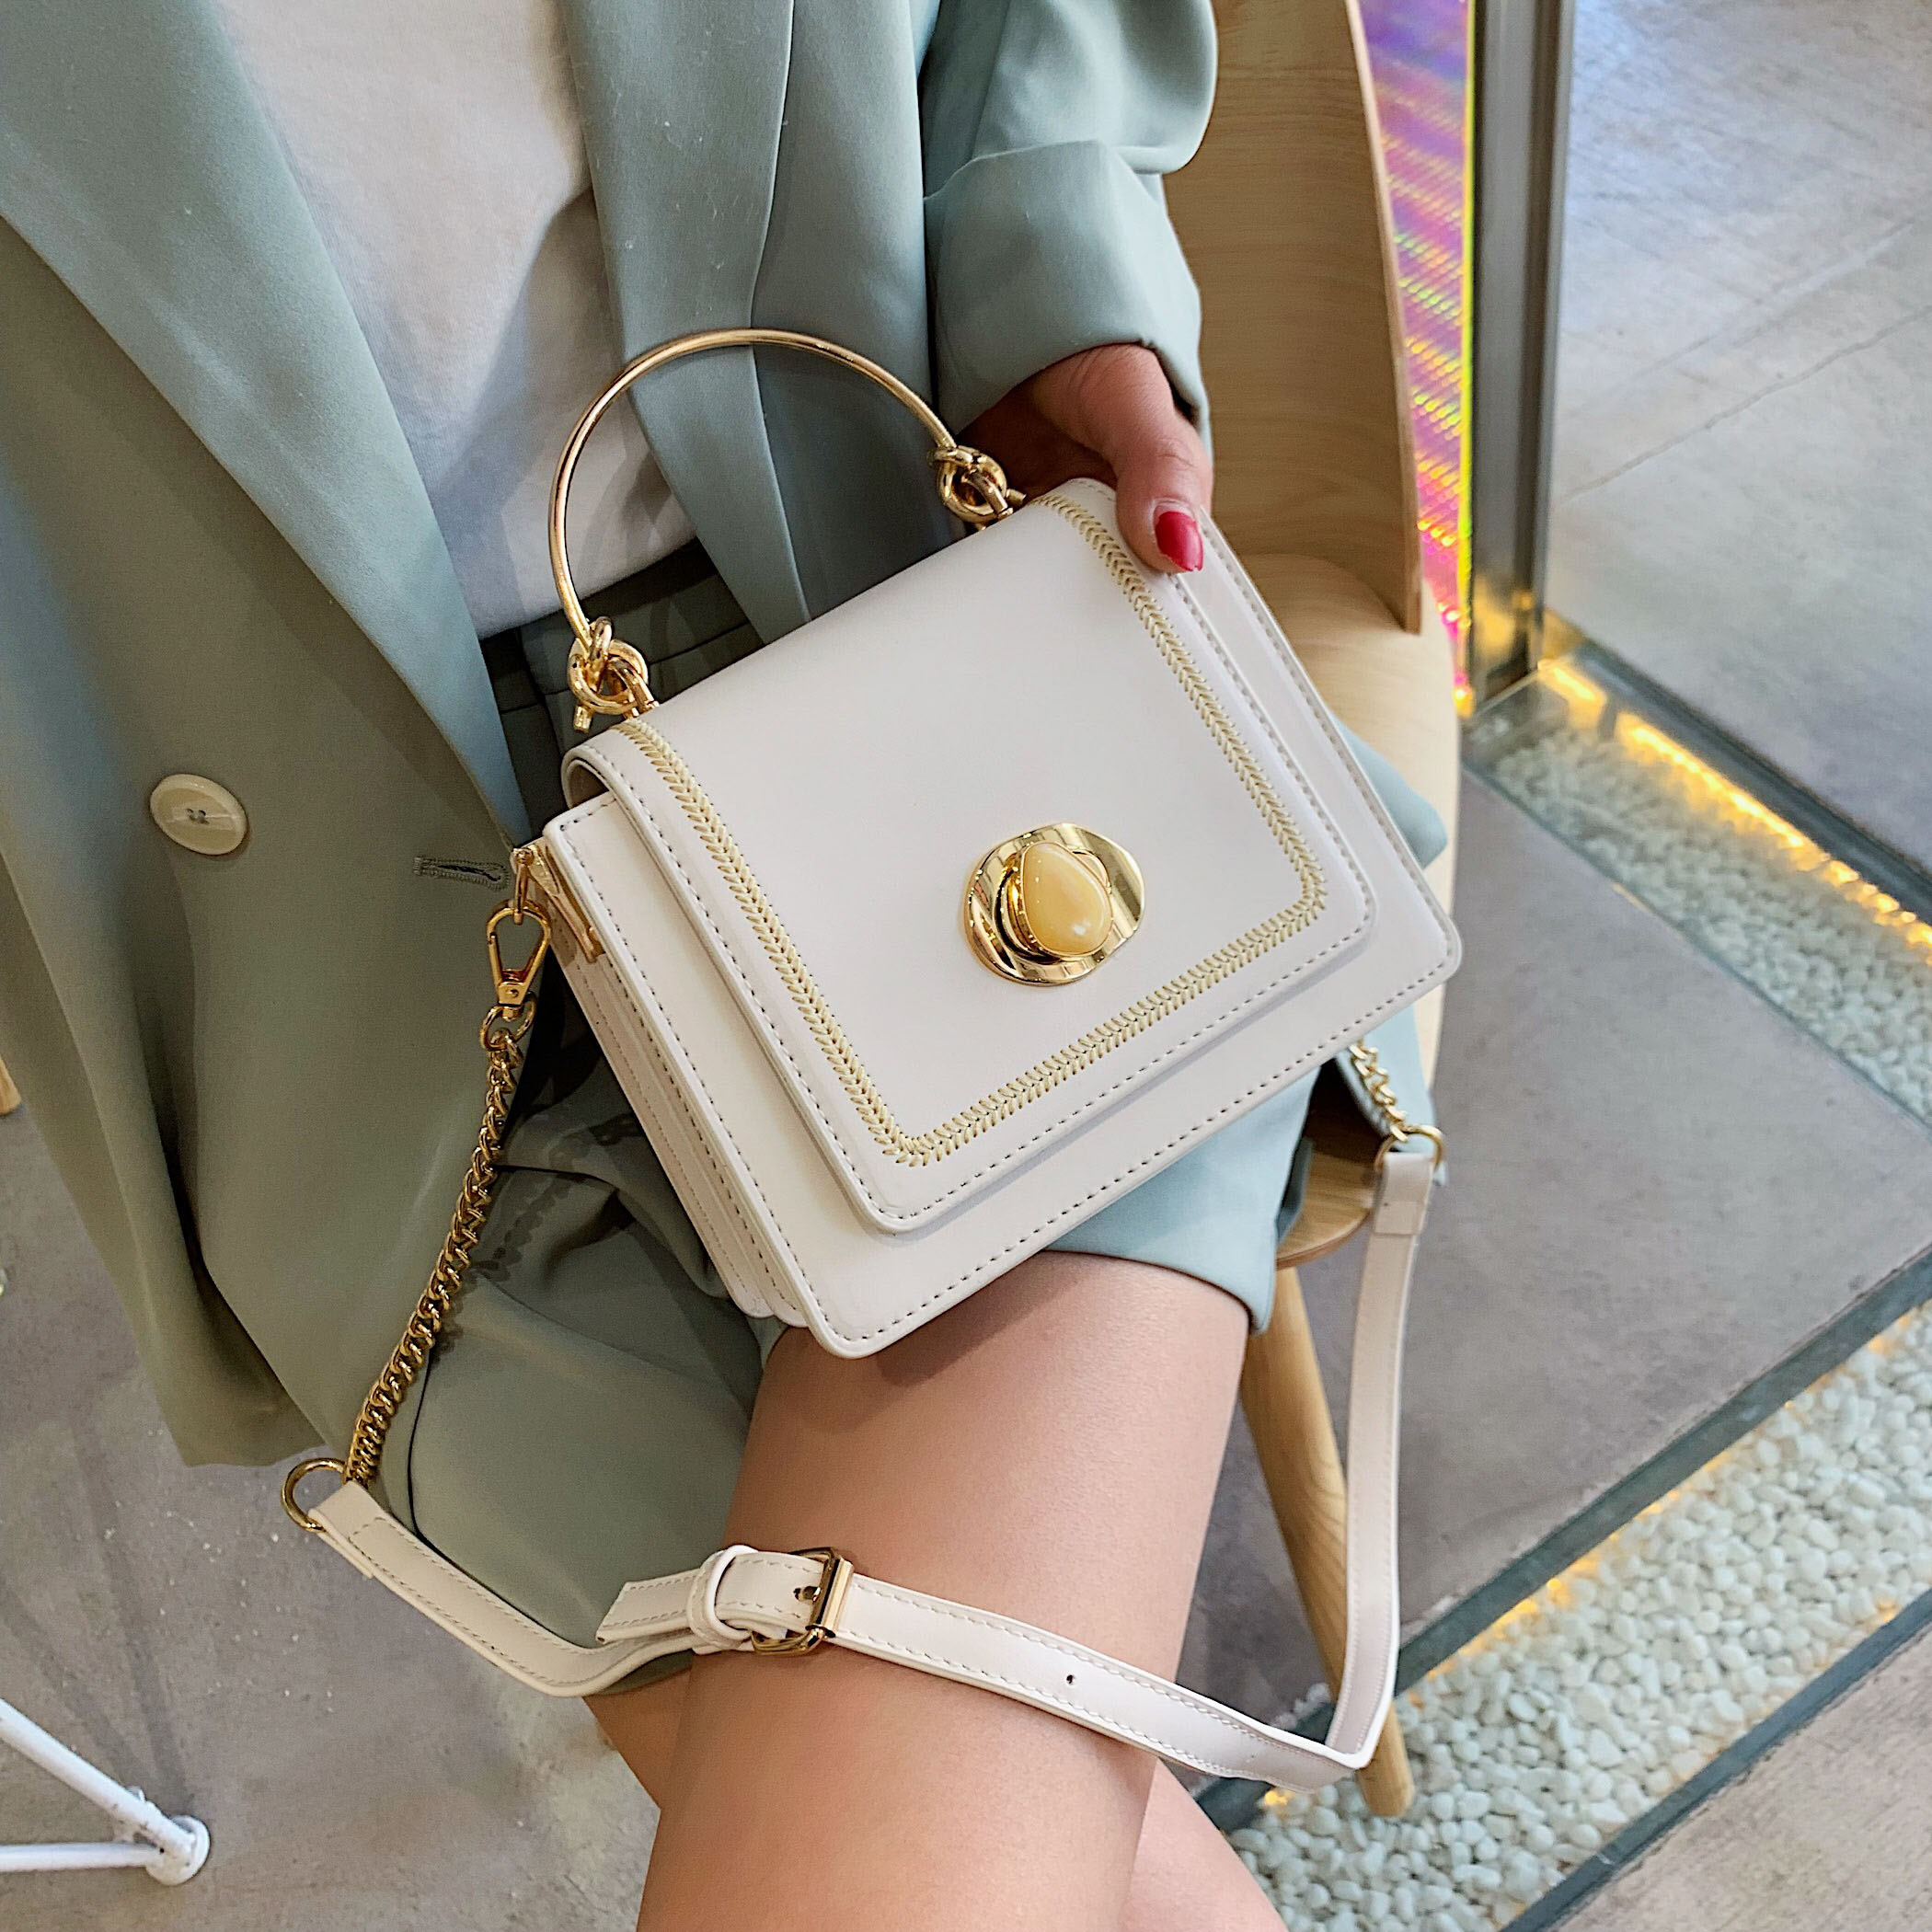 Image 4 - Solid color Leather Mini Crossbody Bags For Women 2019 Summer Messenger Shoulder Bag Female Travel Phone Purses and Handbags-in Shoulder Bags from Luggage & Bags